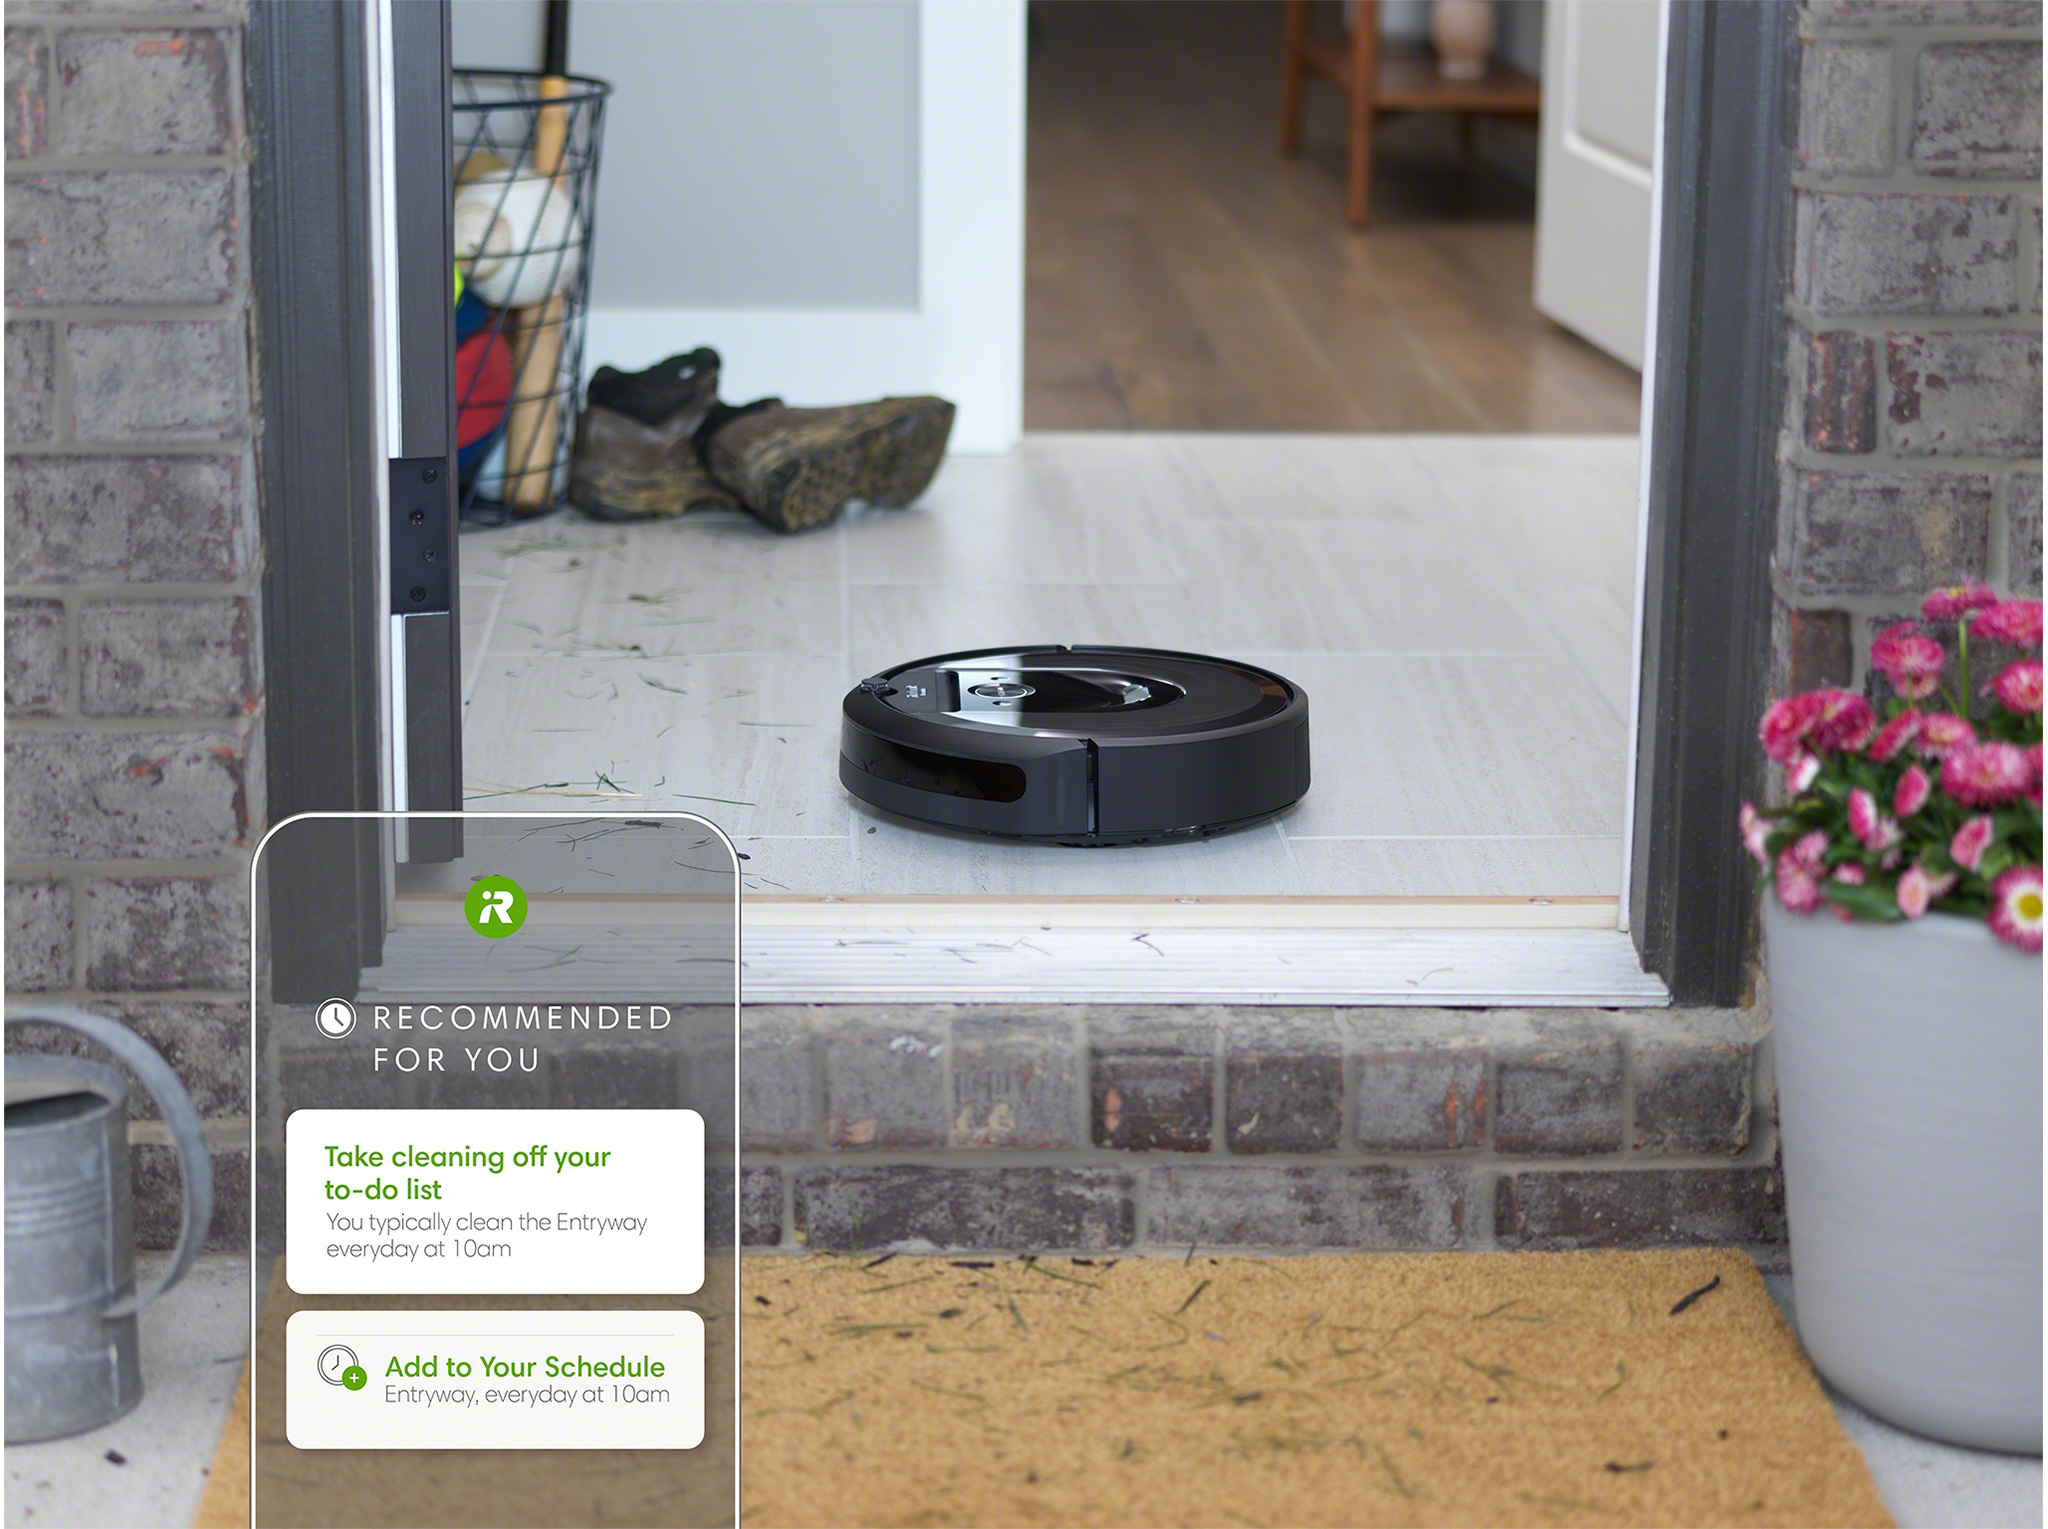 The new iRobot Home App can recommend cleaning schedules based on users' more common cleaning patterns like cleaning on Monday mornings. Roomba robot vacuums and Braava robot mops with Imprint™ Smart Mapping can also provide room-specific recommendations like vacuuming the living room on Friday evenings, or in the dining room and kitchen after meals.